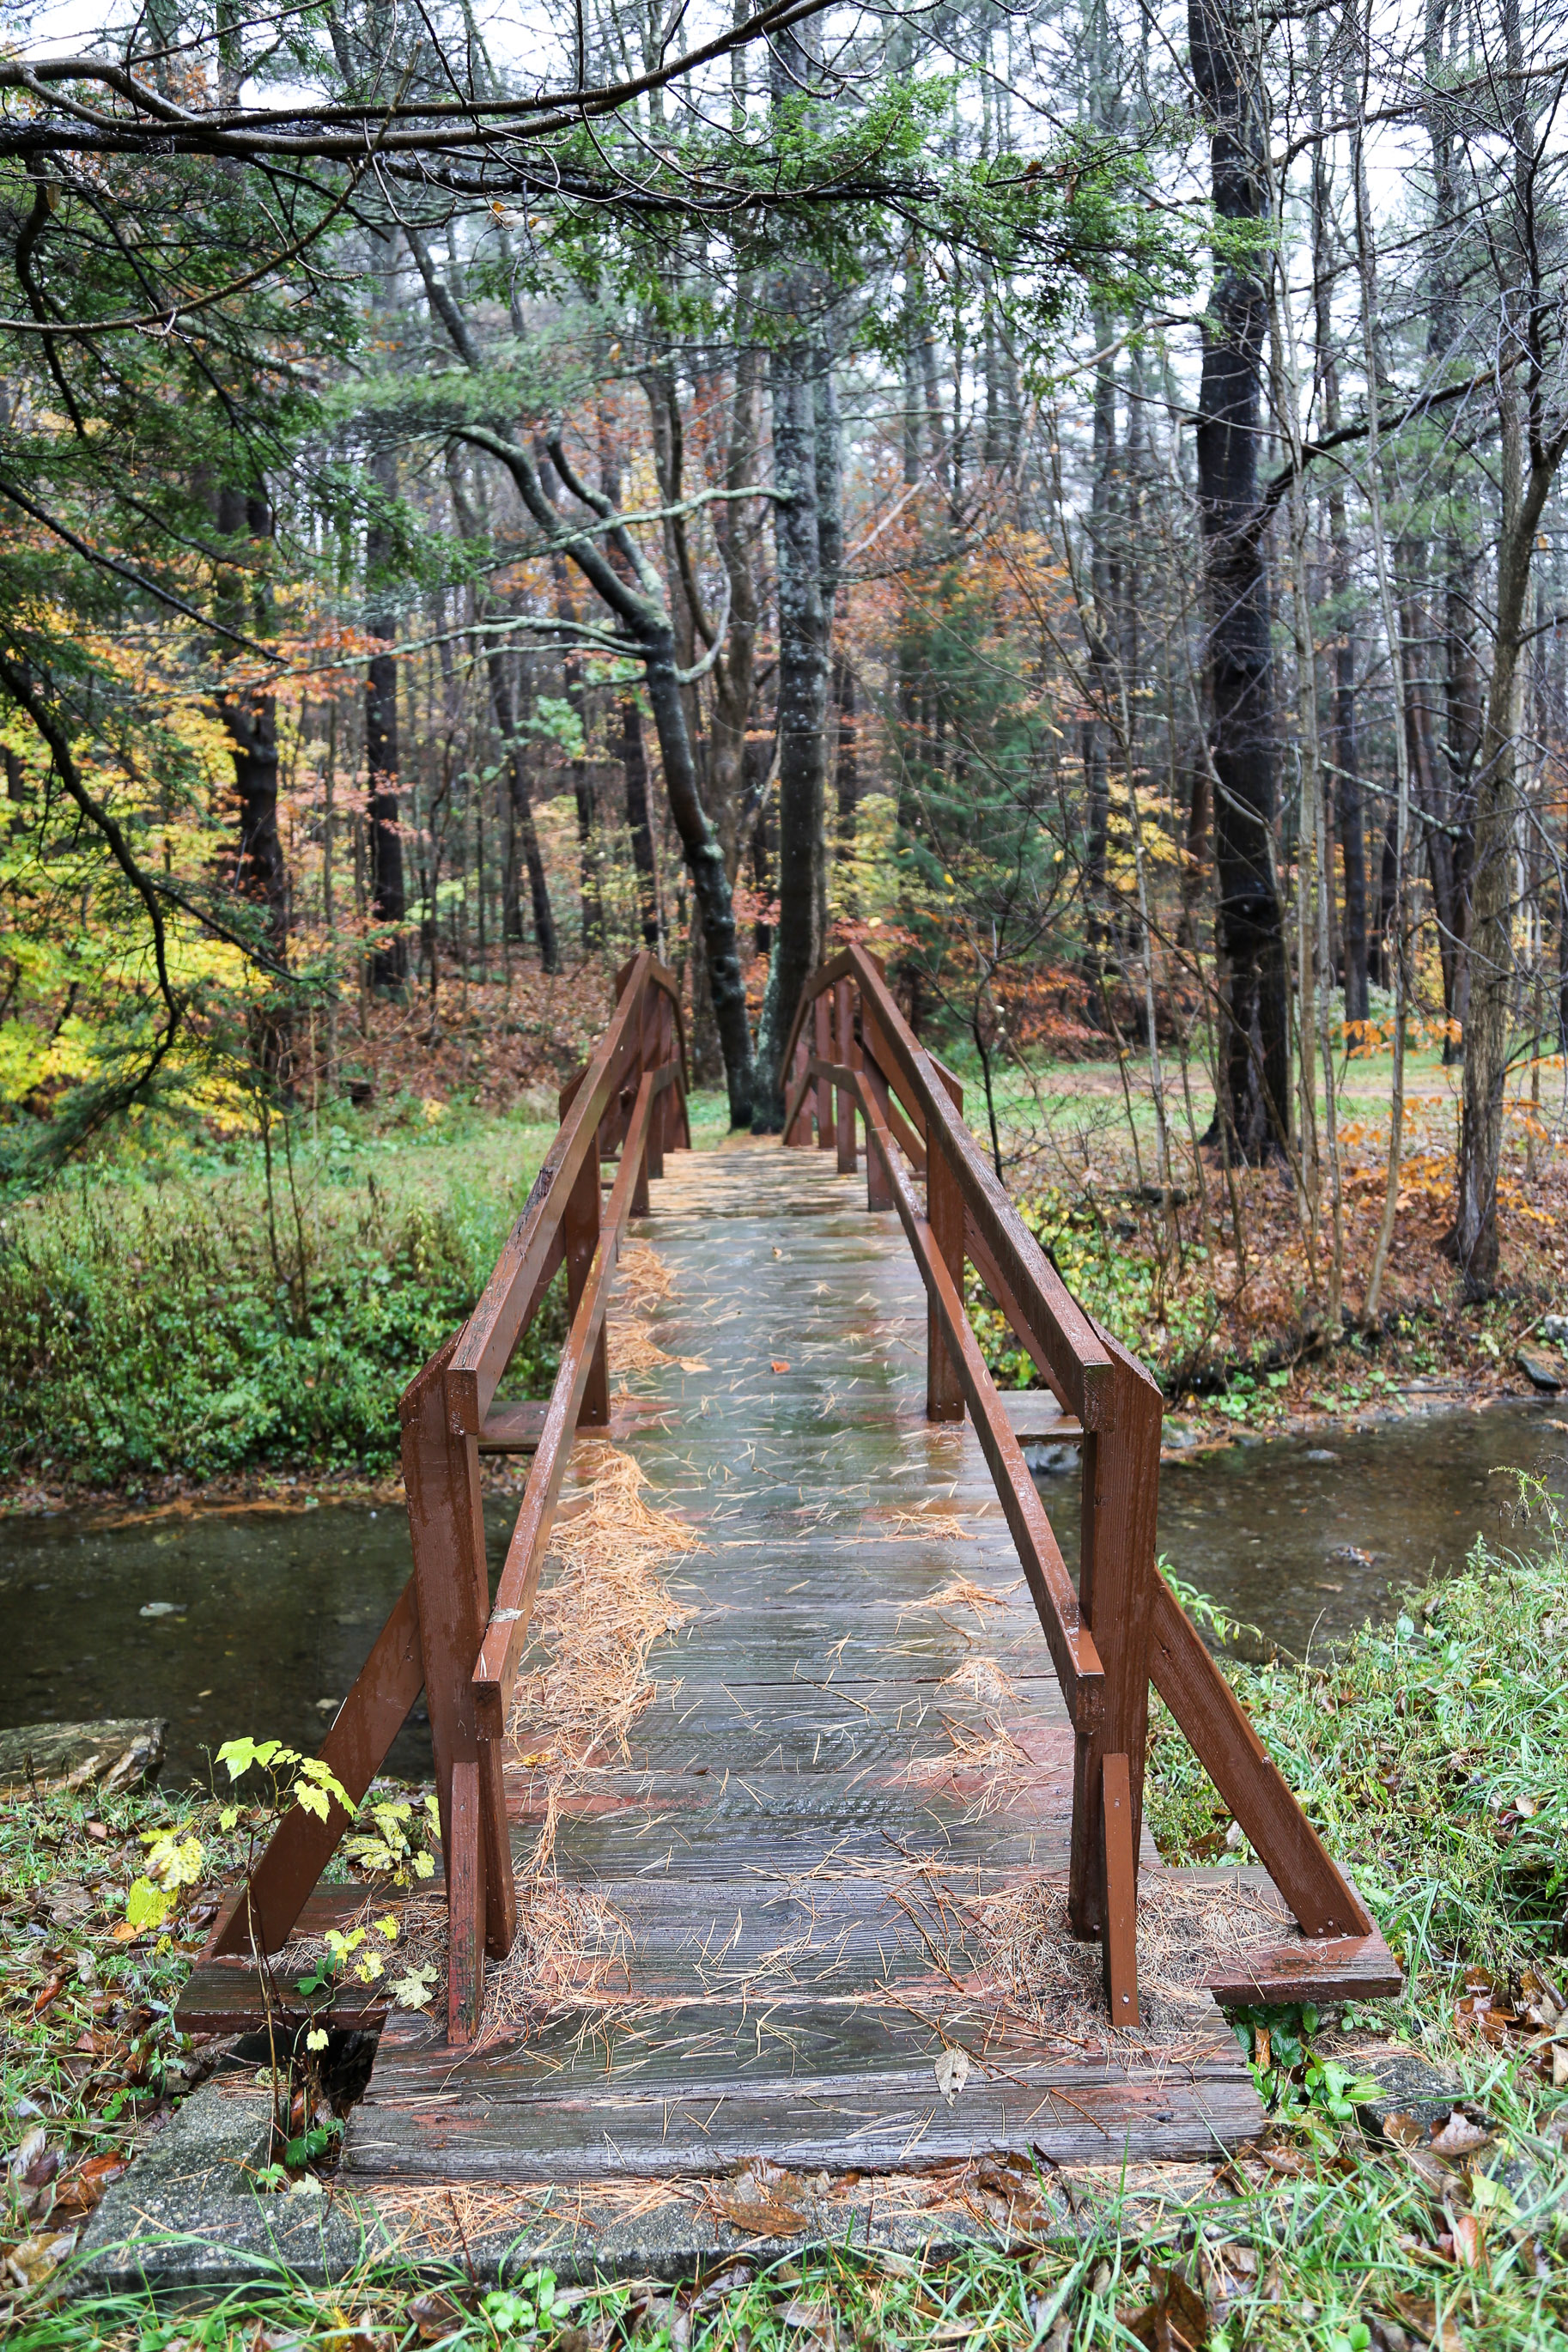 New-England-in-the-fall-2.jpg